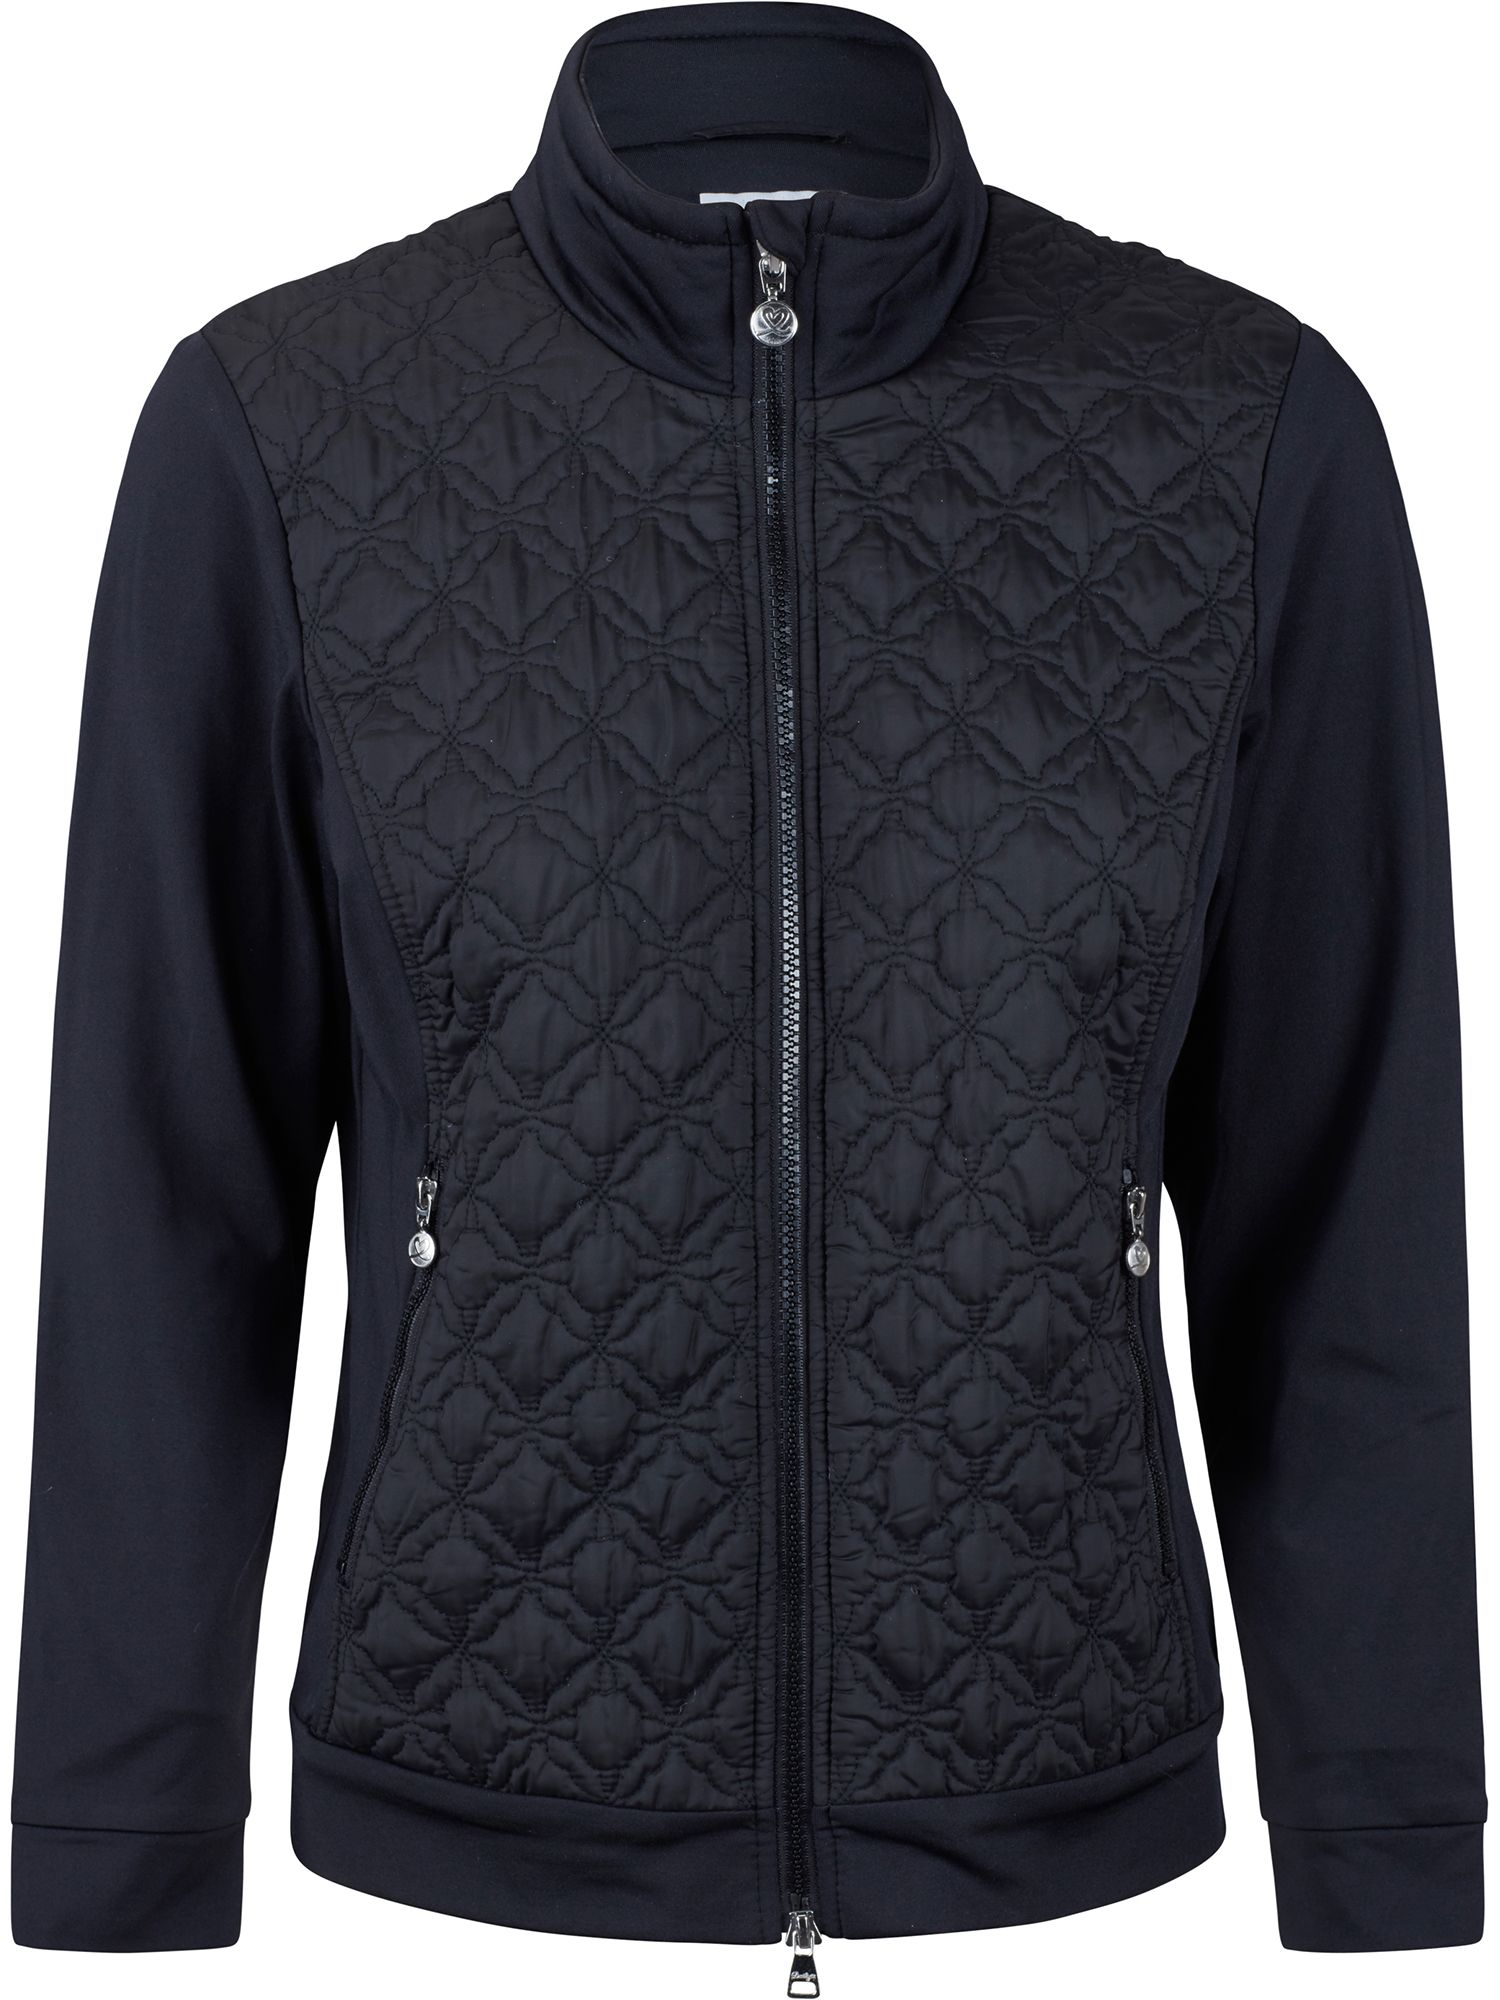 Daily Sports Course Jacket, Black